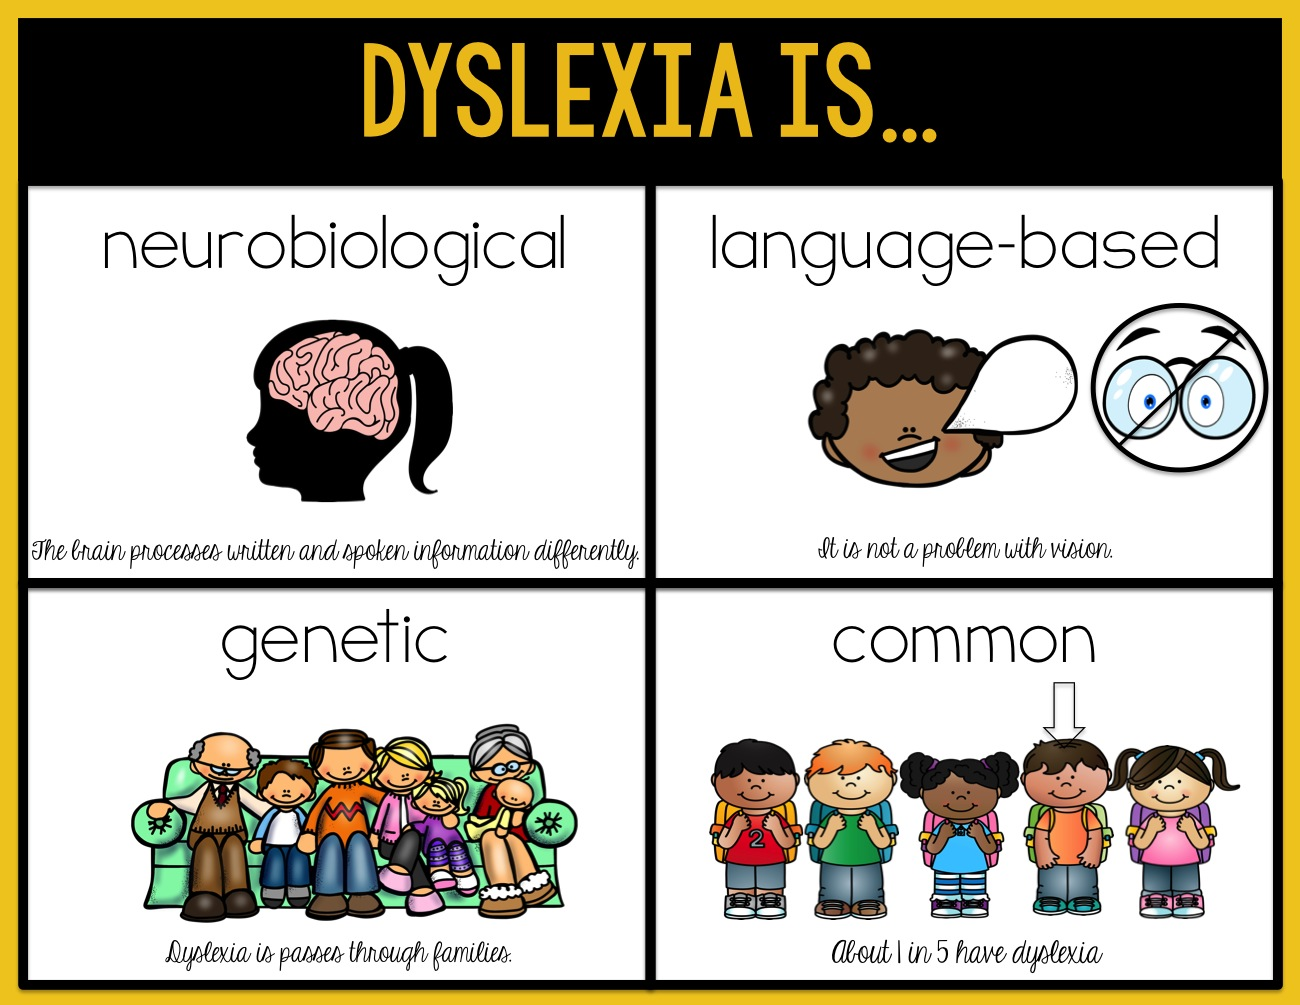 essay dyslexia can someone do my essay dyslexia misconceptions and myths leylia com can someone do my essay dyslexia misconceptions and myths